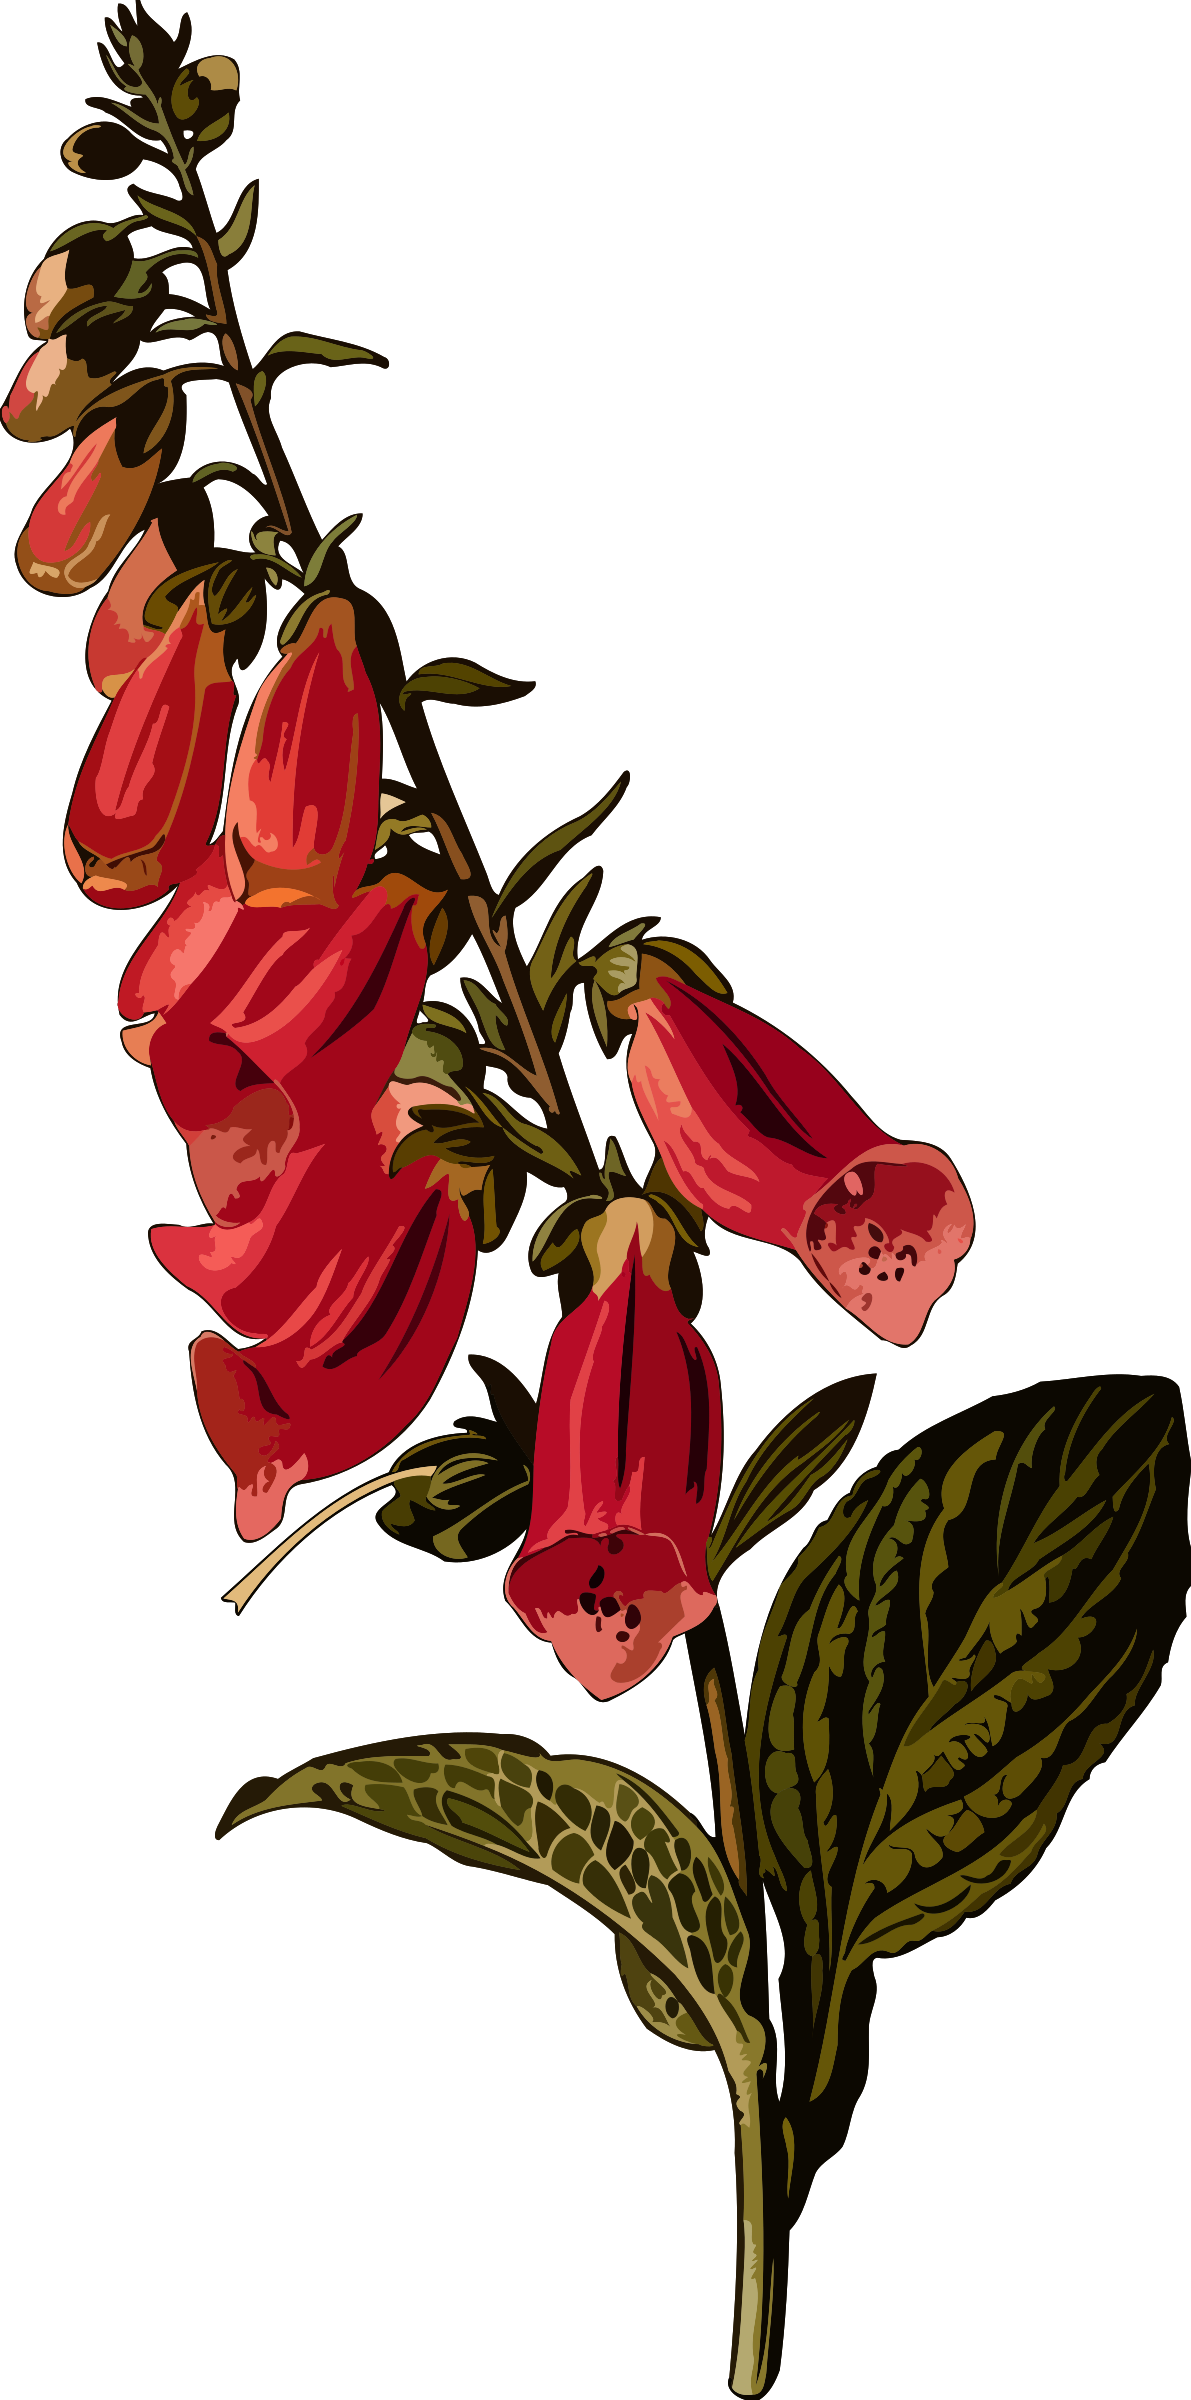 Foxglove (smaller file) by Firkin